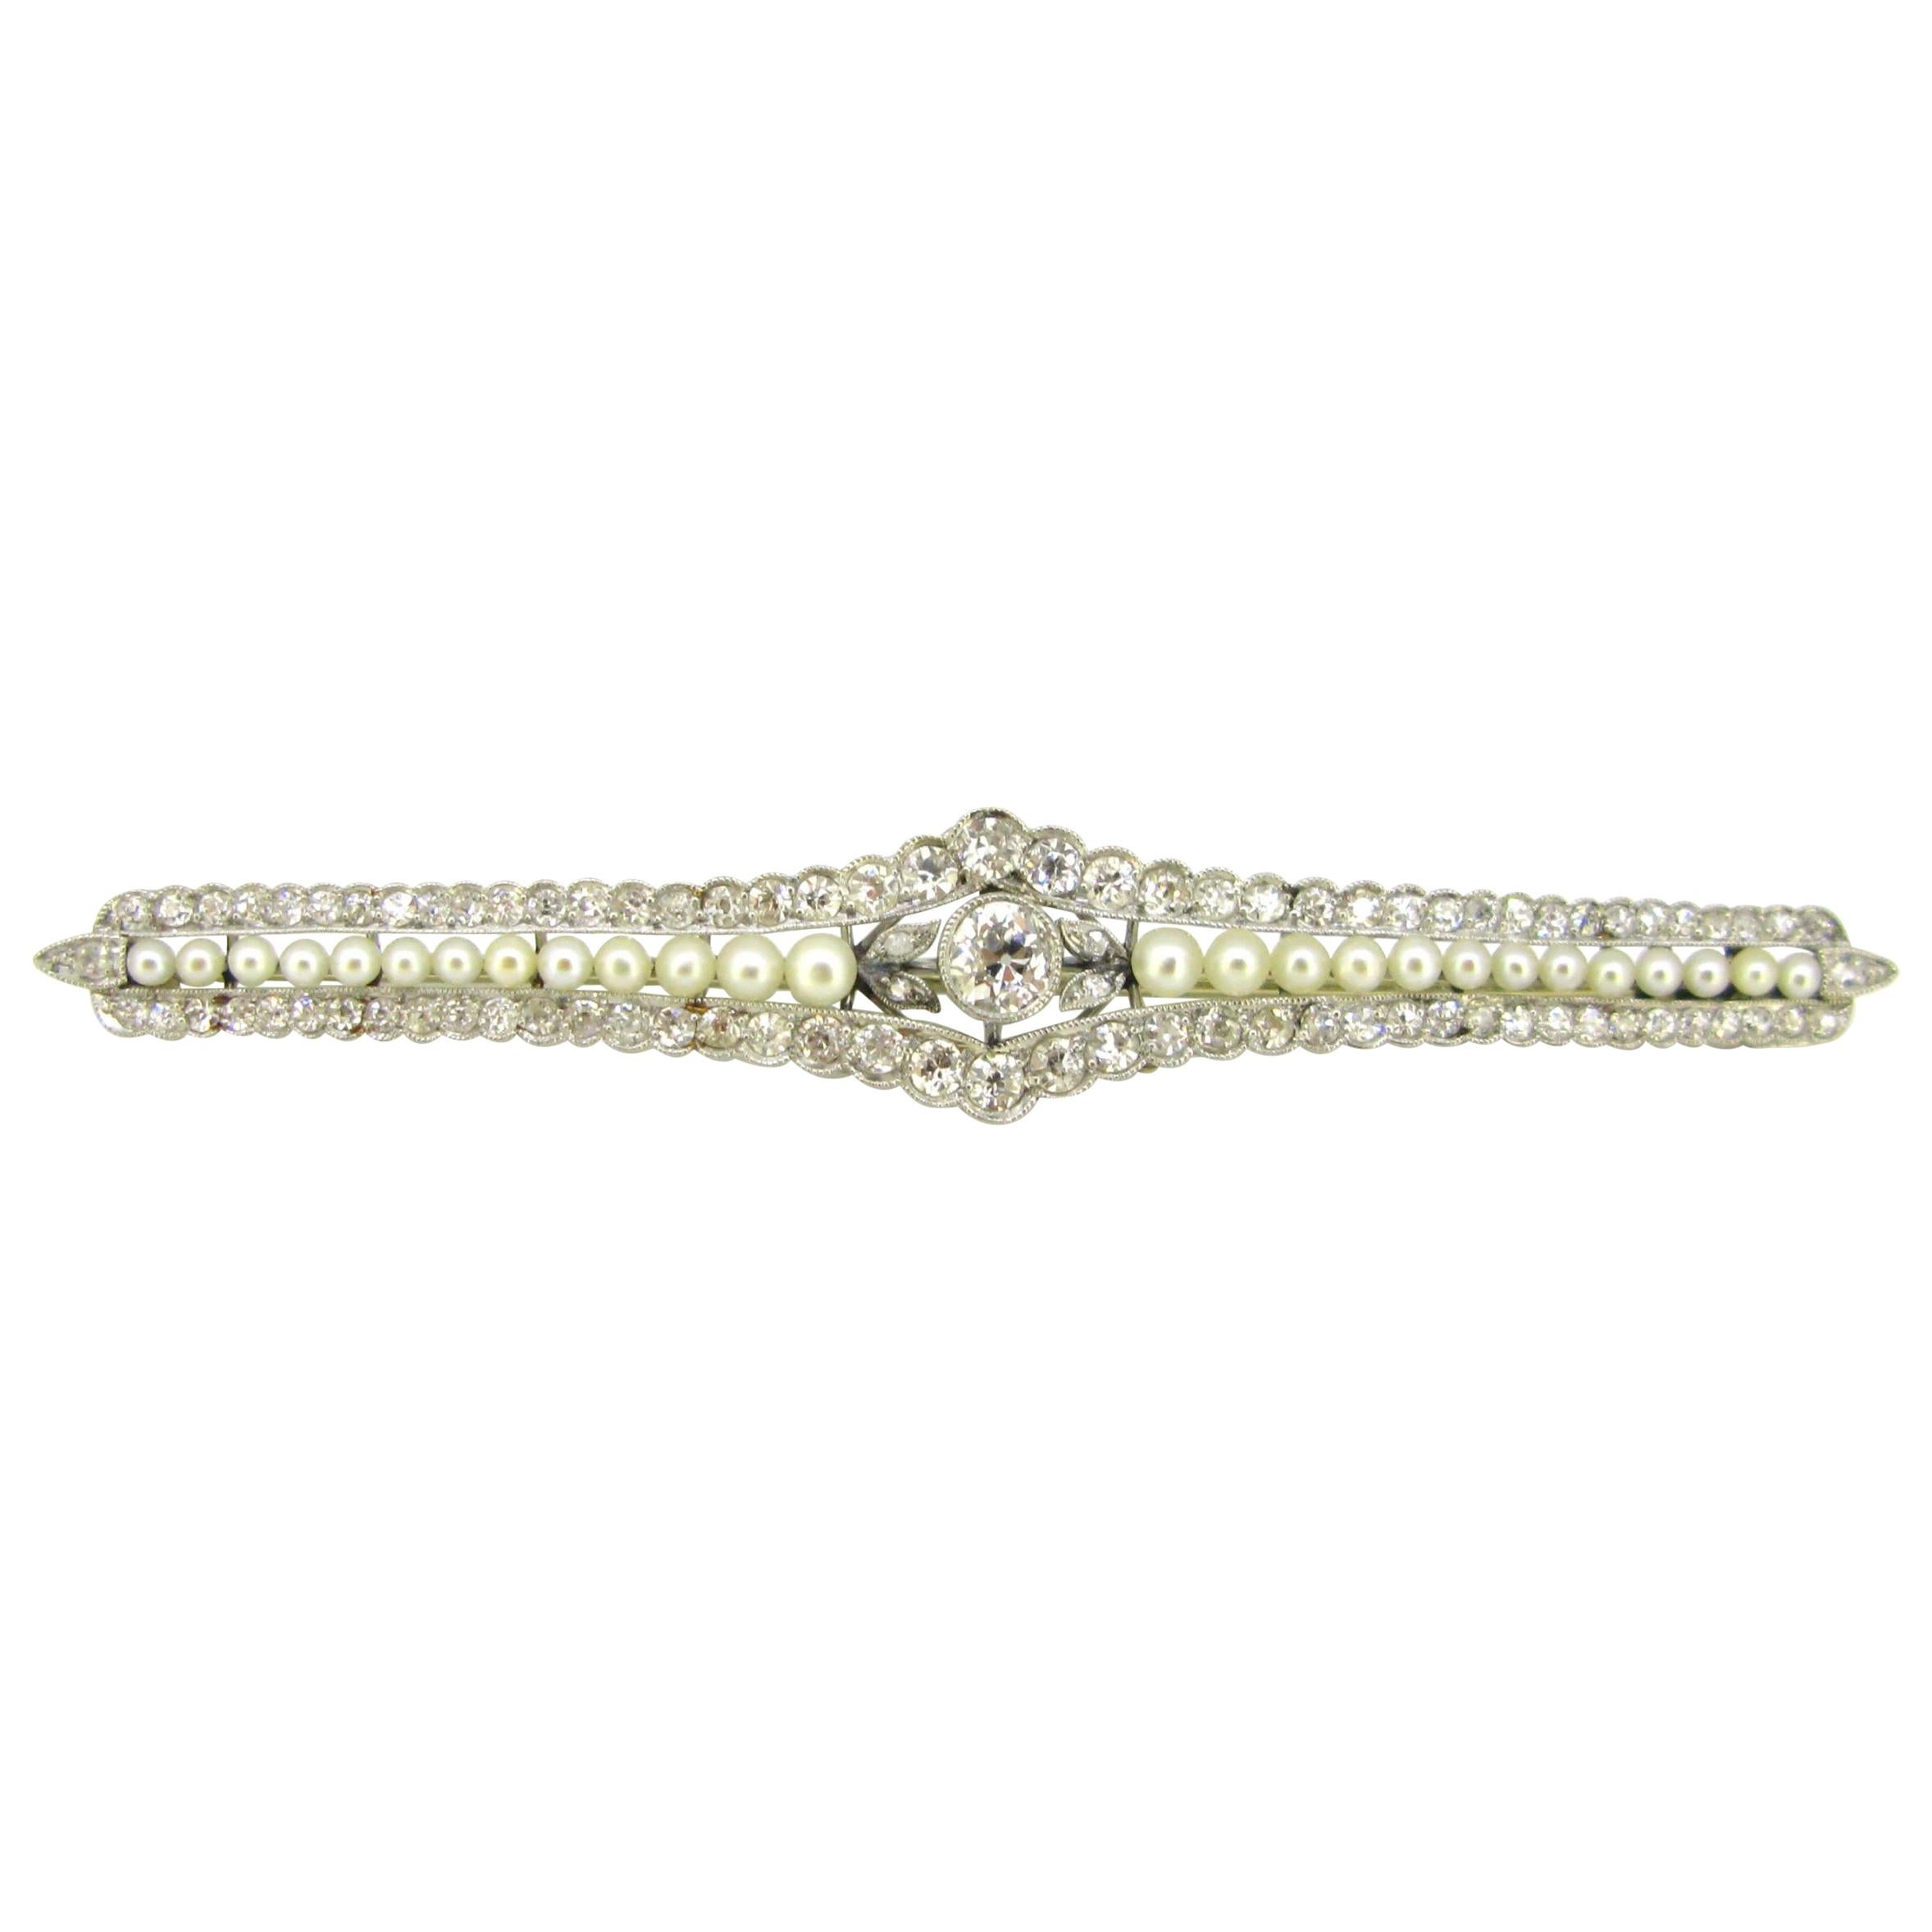 Antique Edwardian Diamonds and Pearls Brooch, 18kt Gold and Platinum, circa 1910